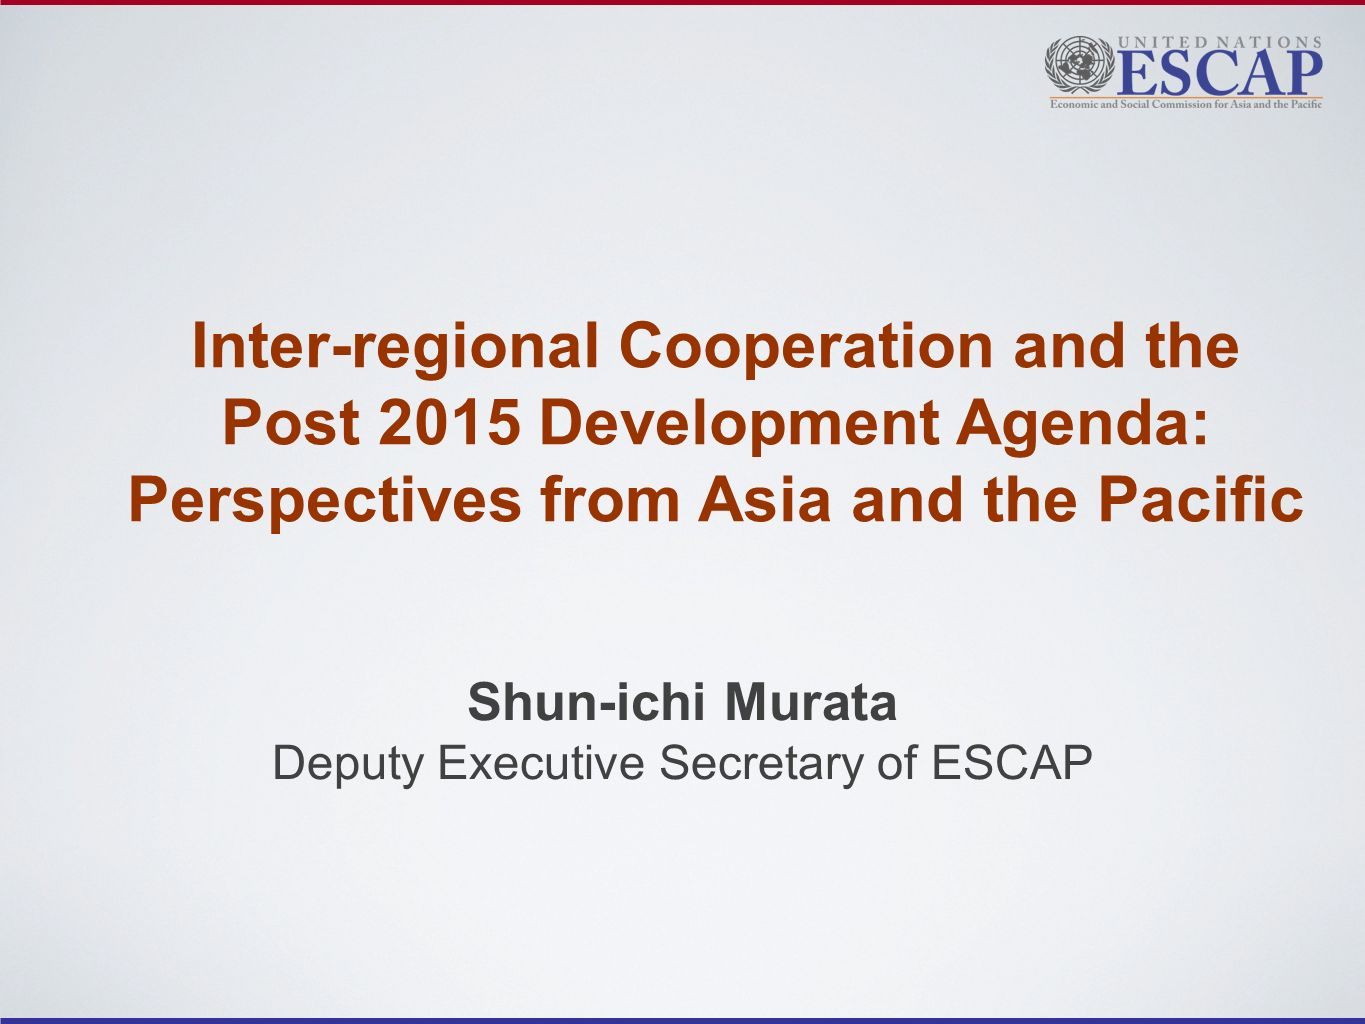 Inter-regional Cooperation and the Post 2015 Development Agenda: Perspectives from Asia and the Pacific Shun-ichi Murata Deputy Executive Secretary of ESCAP